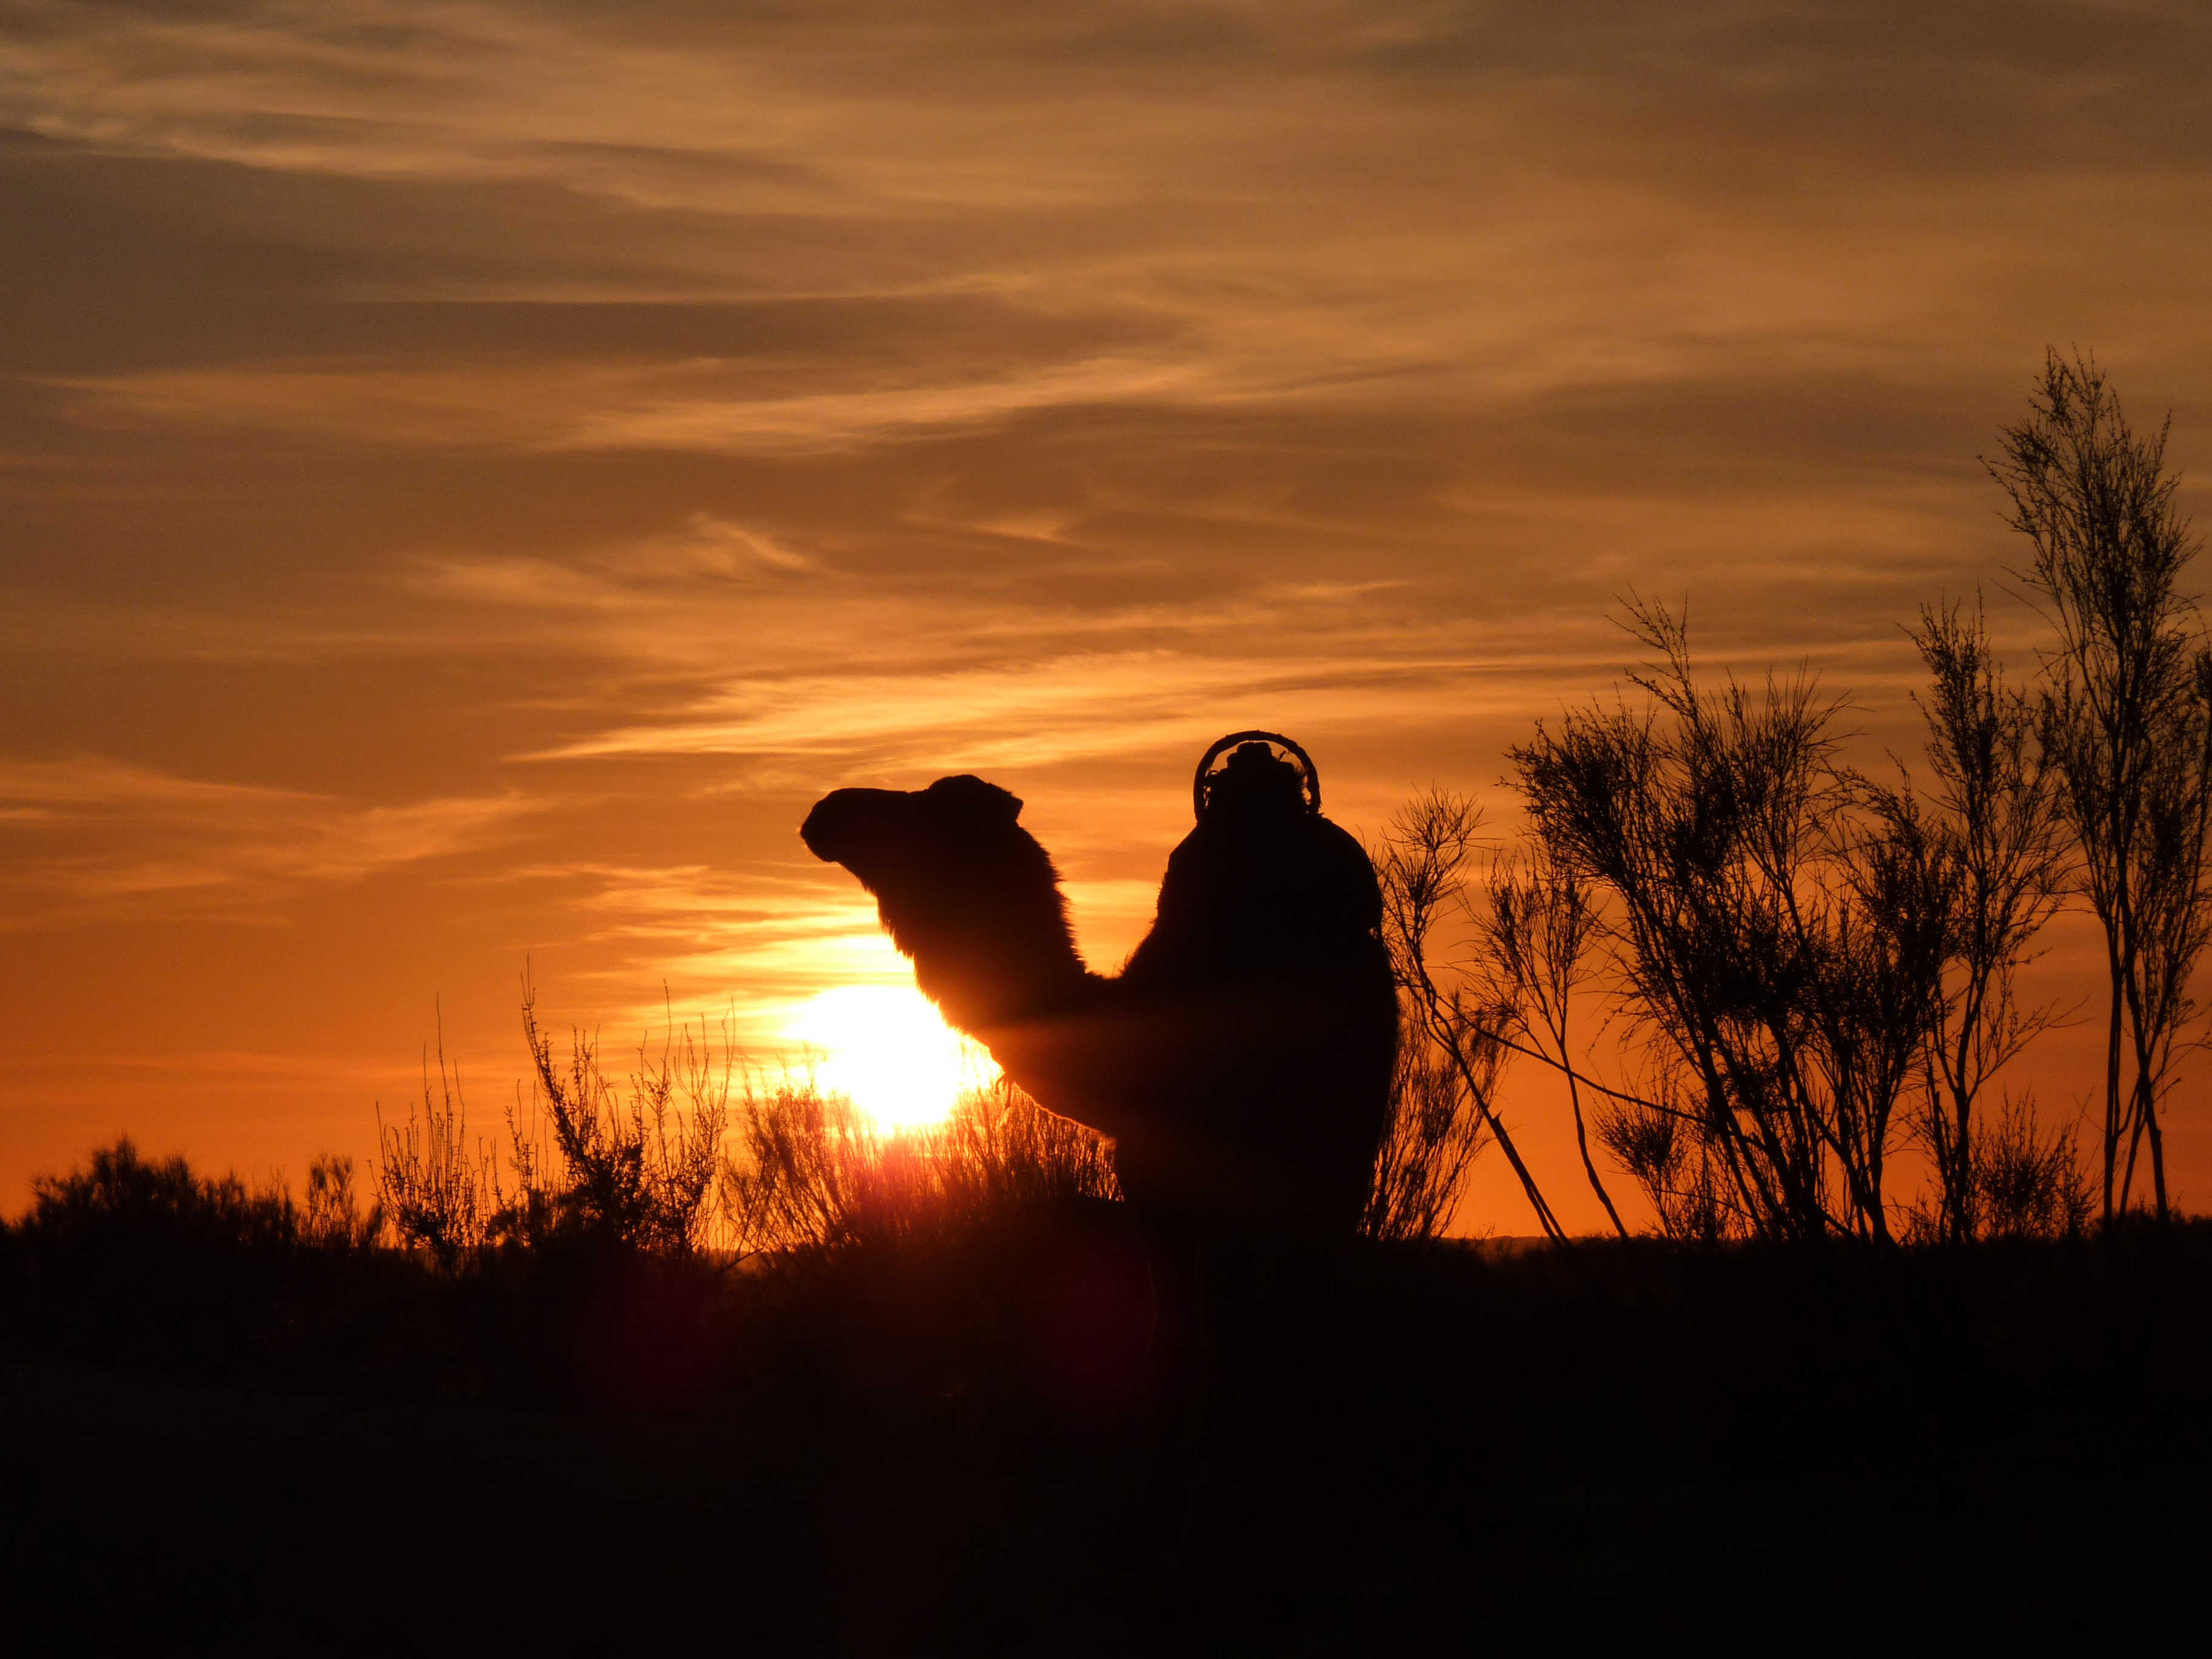 Camel at sunset, Sahara Desert